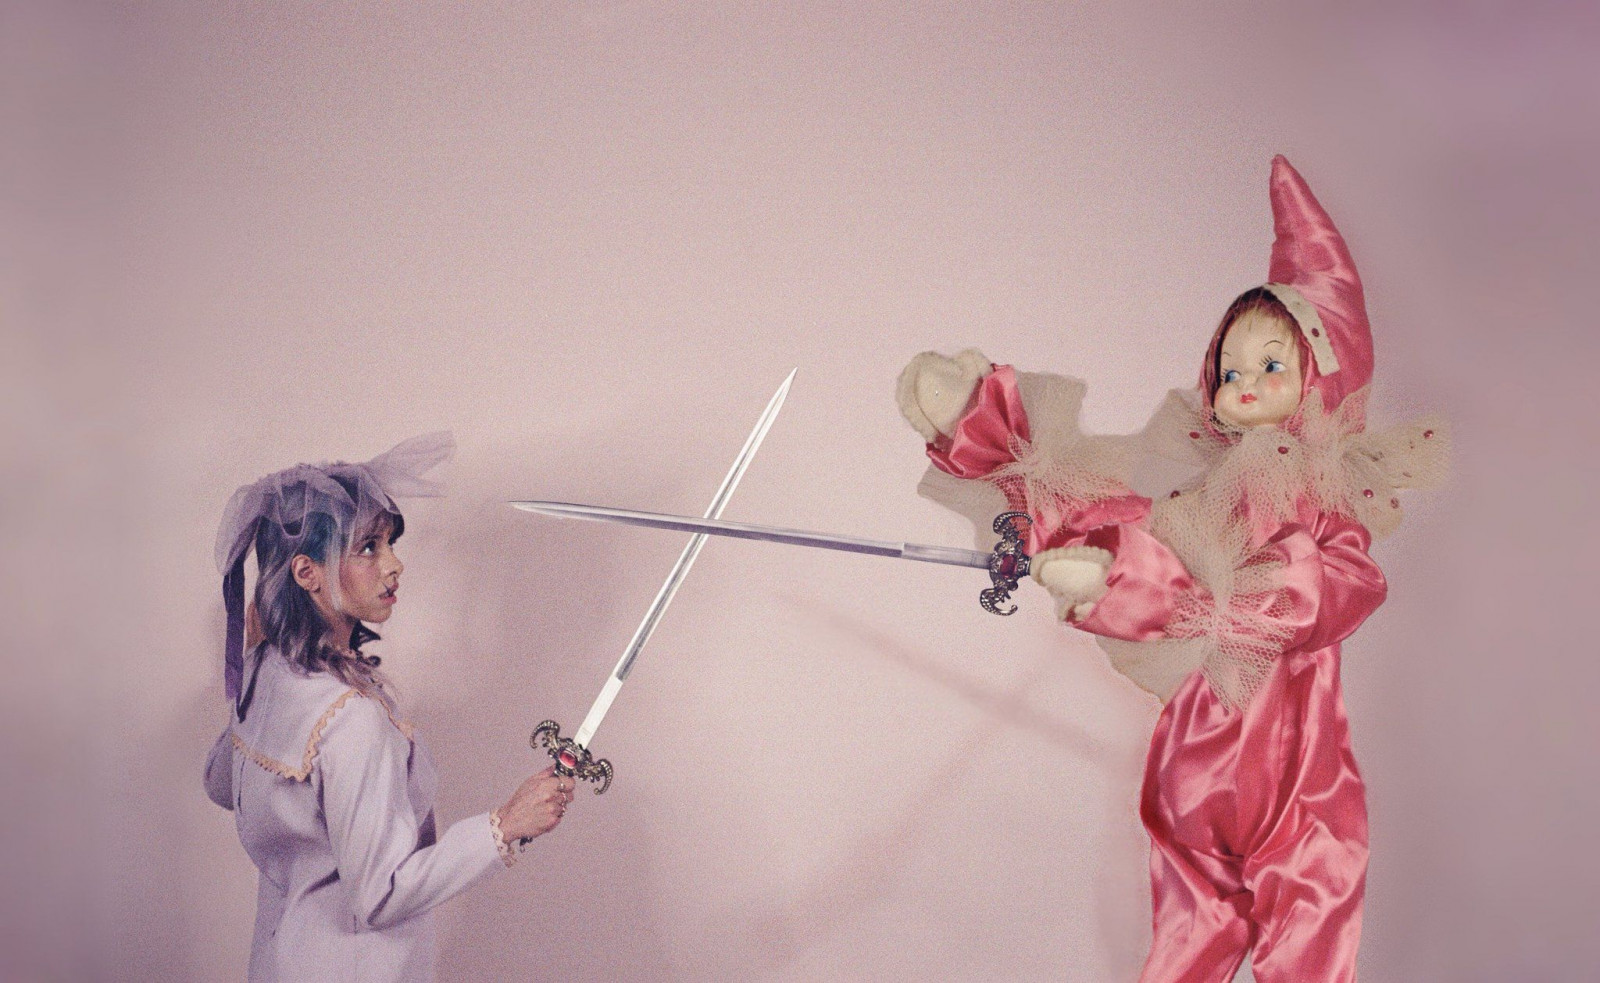 melanie-martinez-sword-fighting